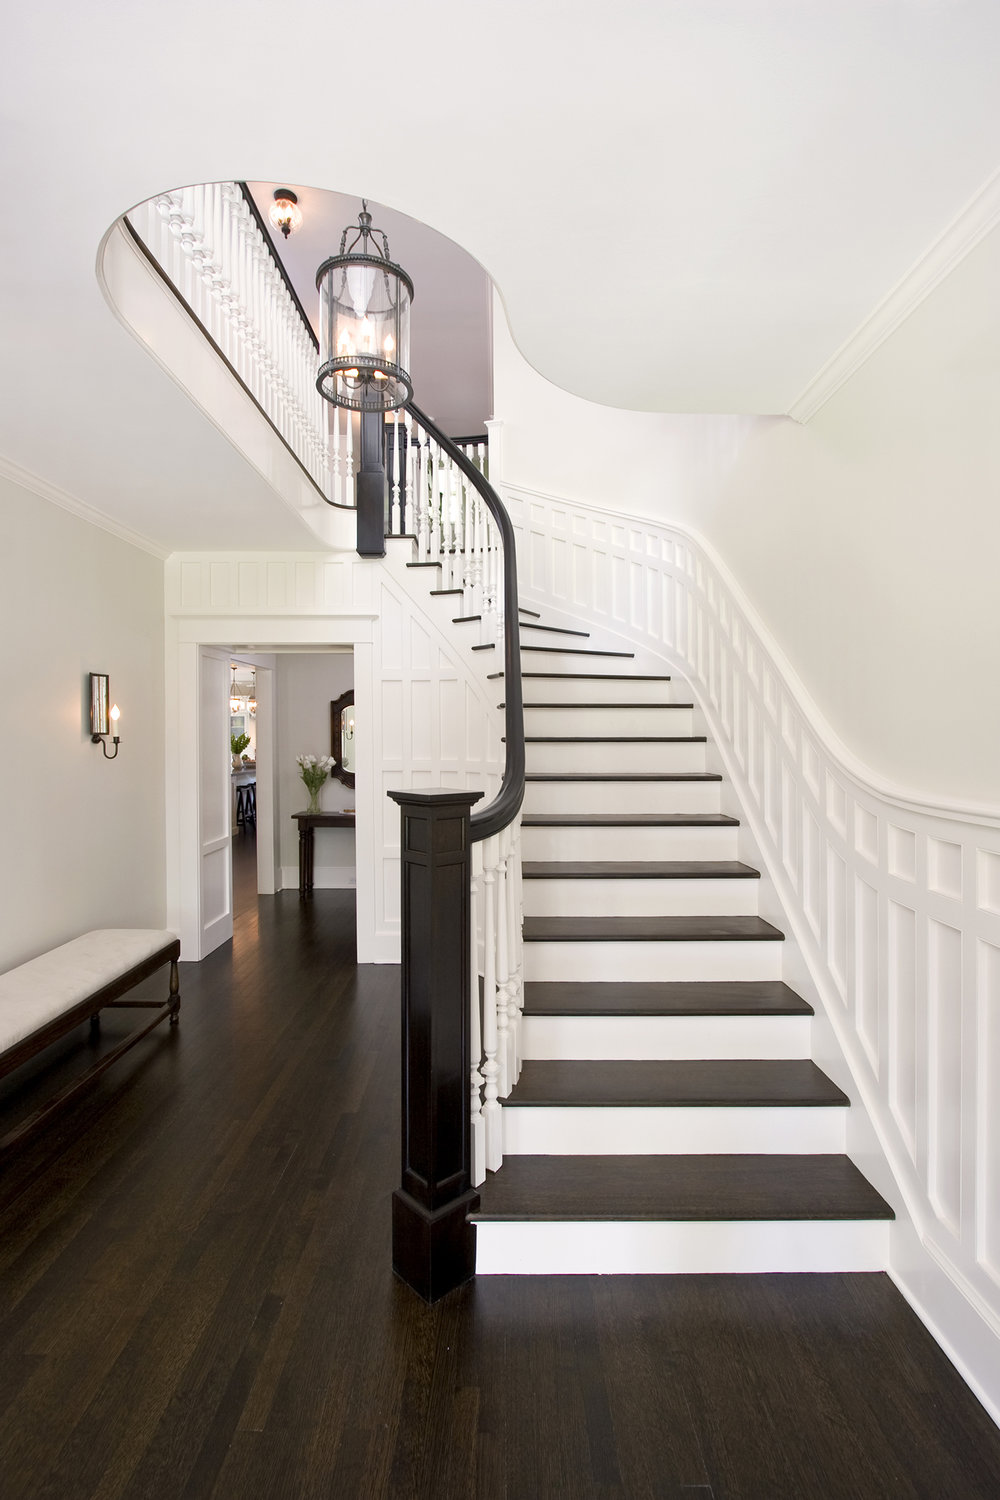 Entry Hall Stair featuring dark wood floors and white paneled wainscot.